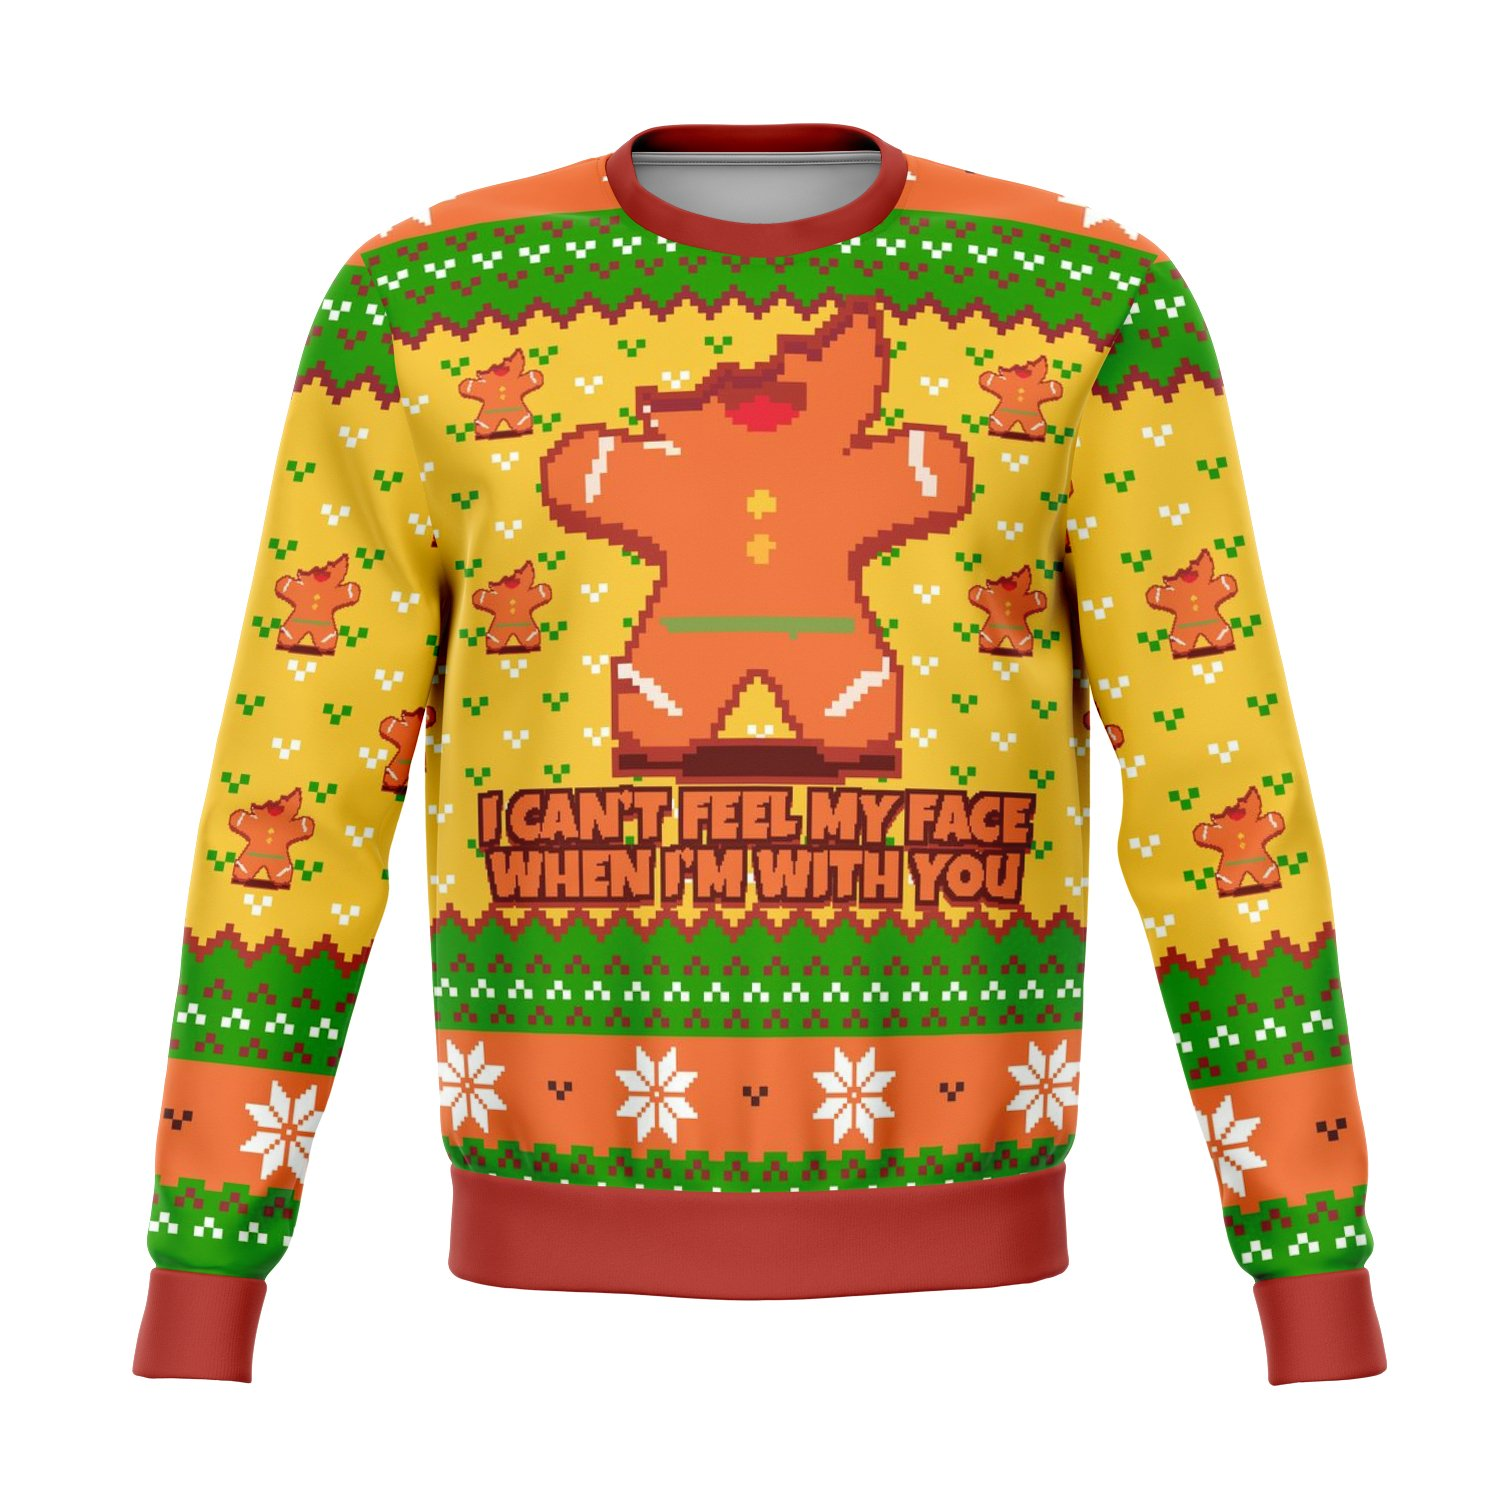 I Cant Feel My Face When I'm With You Funny Ugly Sweater